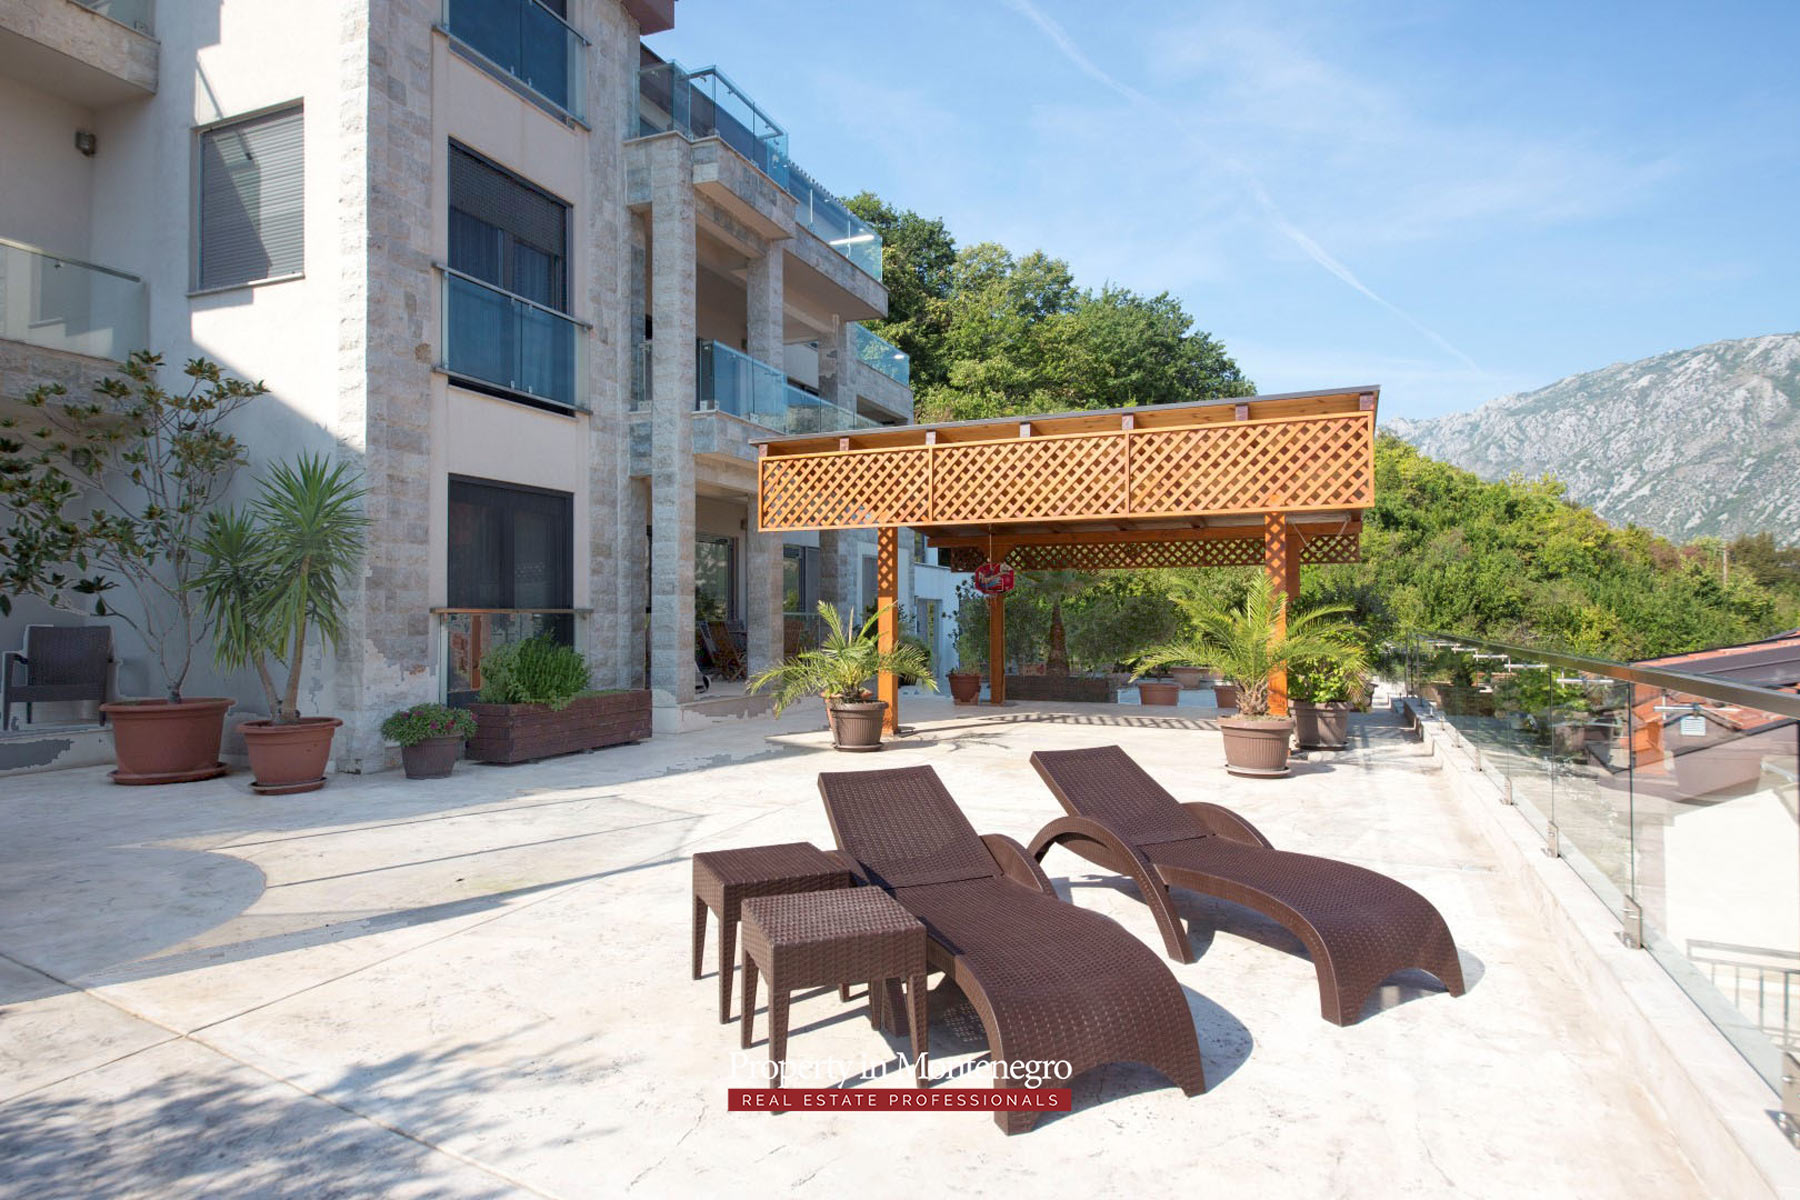 Three-bedroom-apartment-for-sale-in-Bay-of-Kotor (13).jpg